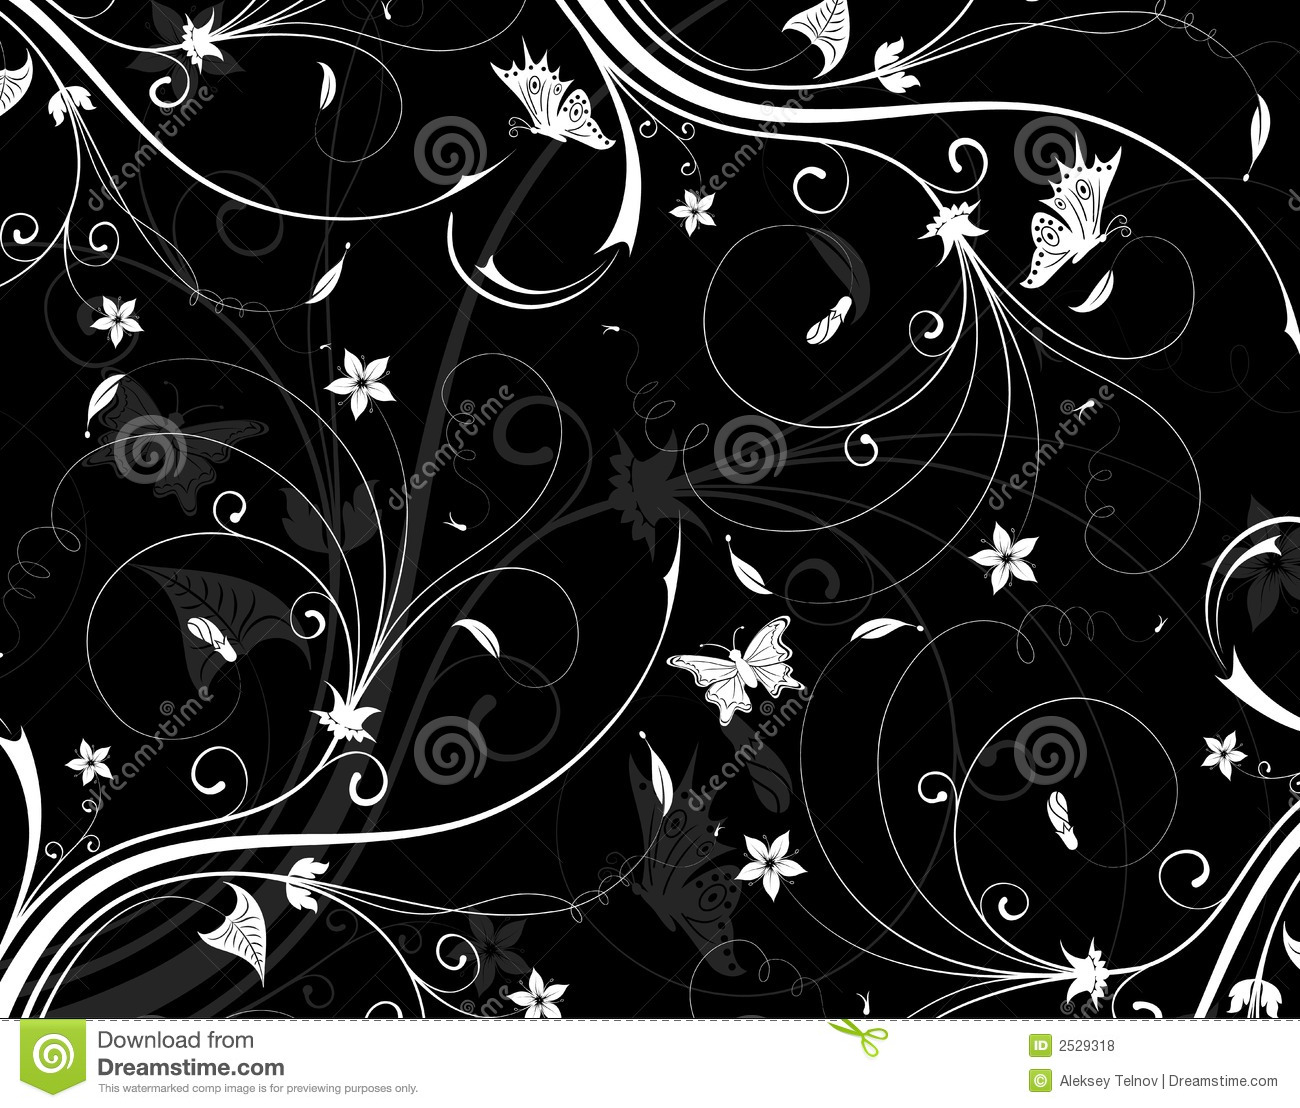 Black Flower And Bud Pattern Royalty Free Stock Photos: Abstract Flower Pattern Royalty Free Stock Photos